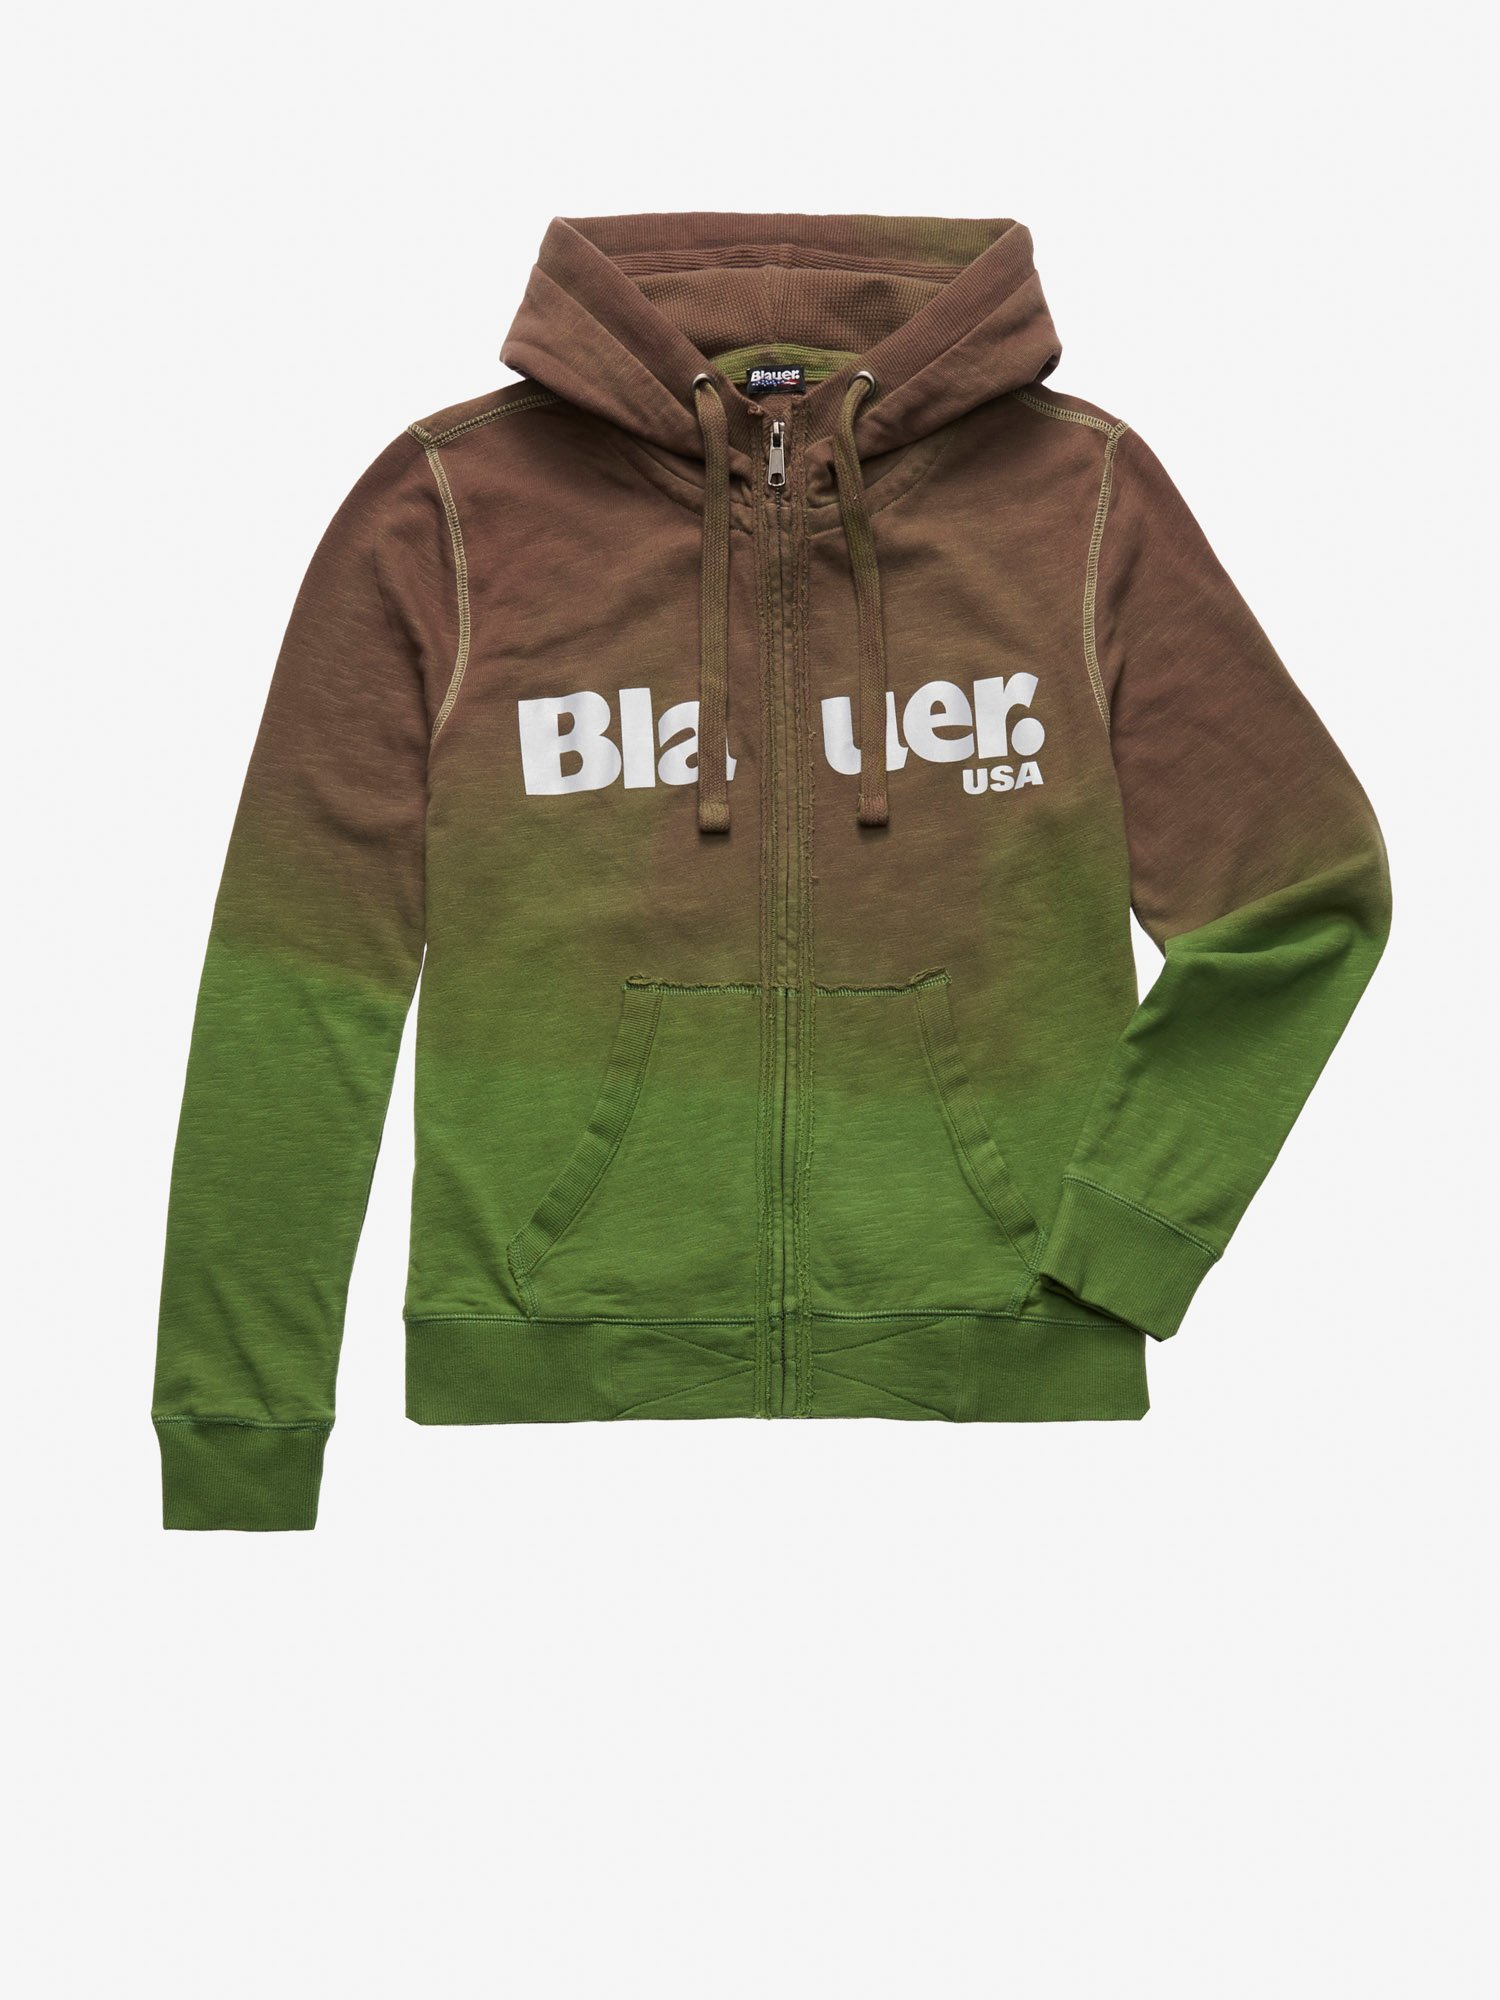 Blauer - OPEN HOODED SHAHED SWEATSHIRT WITH IRIDESCENT PRINT - Dusty Green - Blauer